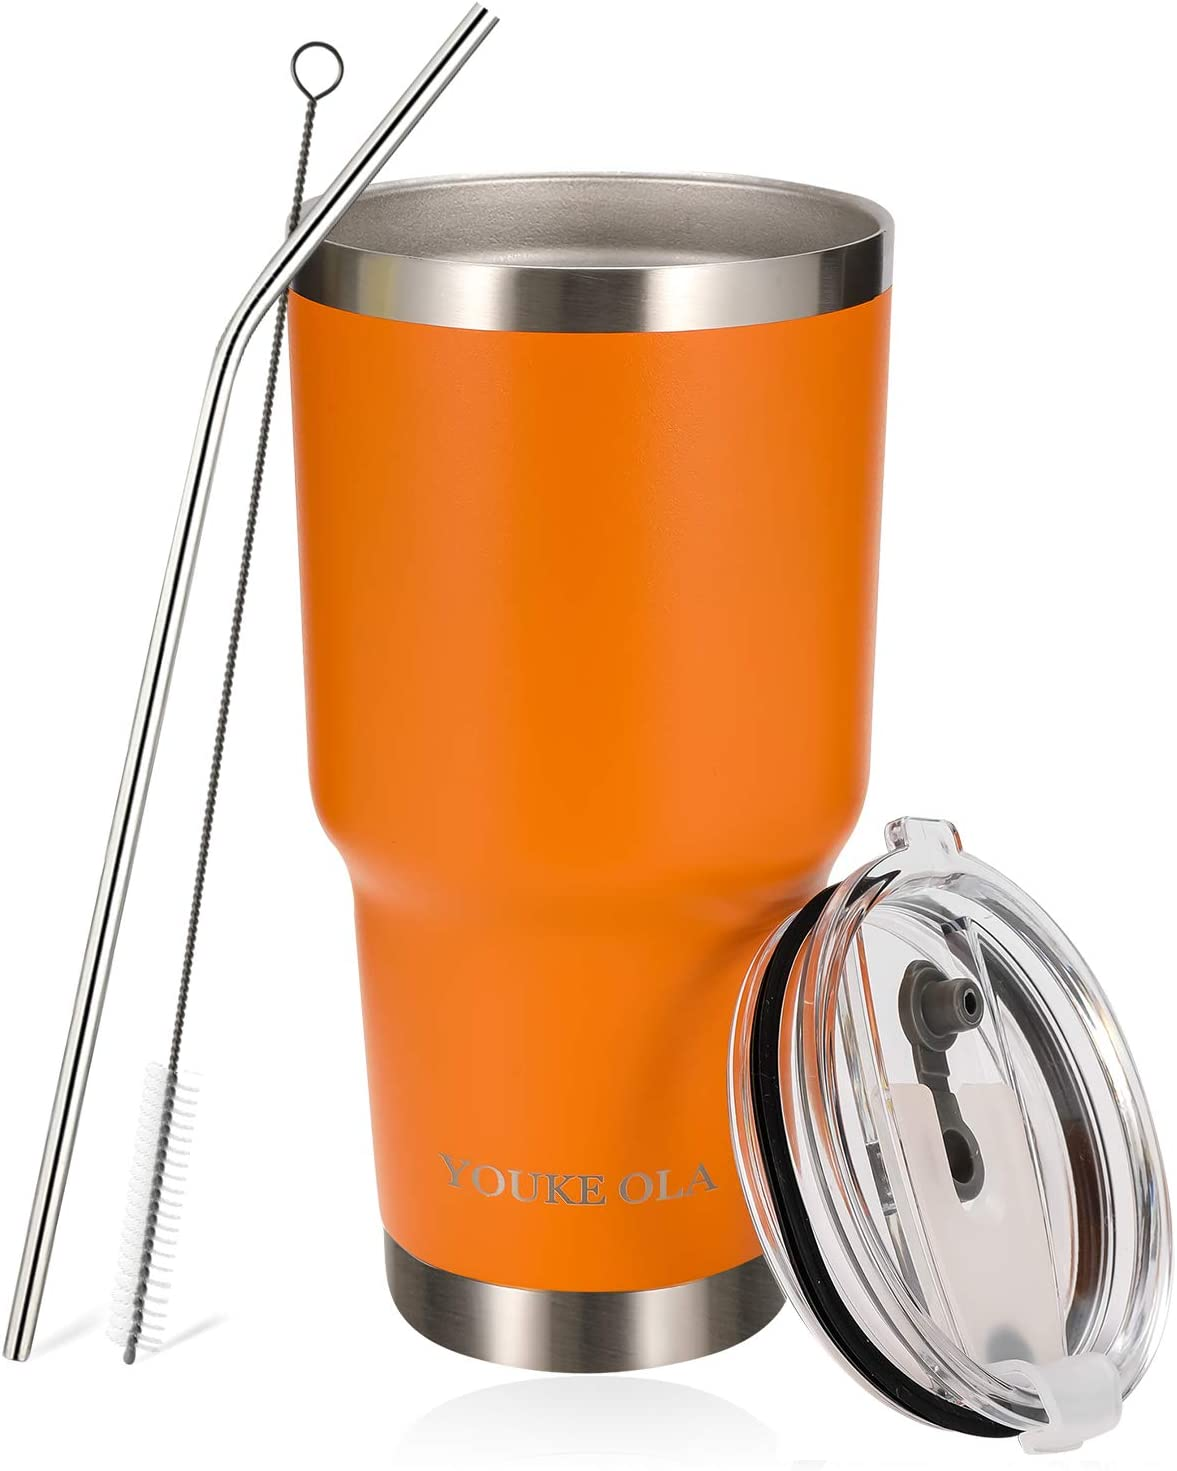 Stainless Steel Tumbler 30oz - Vacuum Insulated Tumbler Coffee Cup Double Wall Large Travel Mug with Lid, Straw, Brush, Gift Box Set (Orange, 30oz-1 Pack)